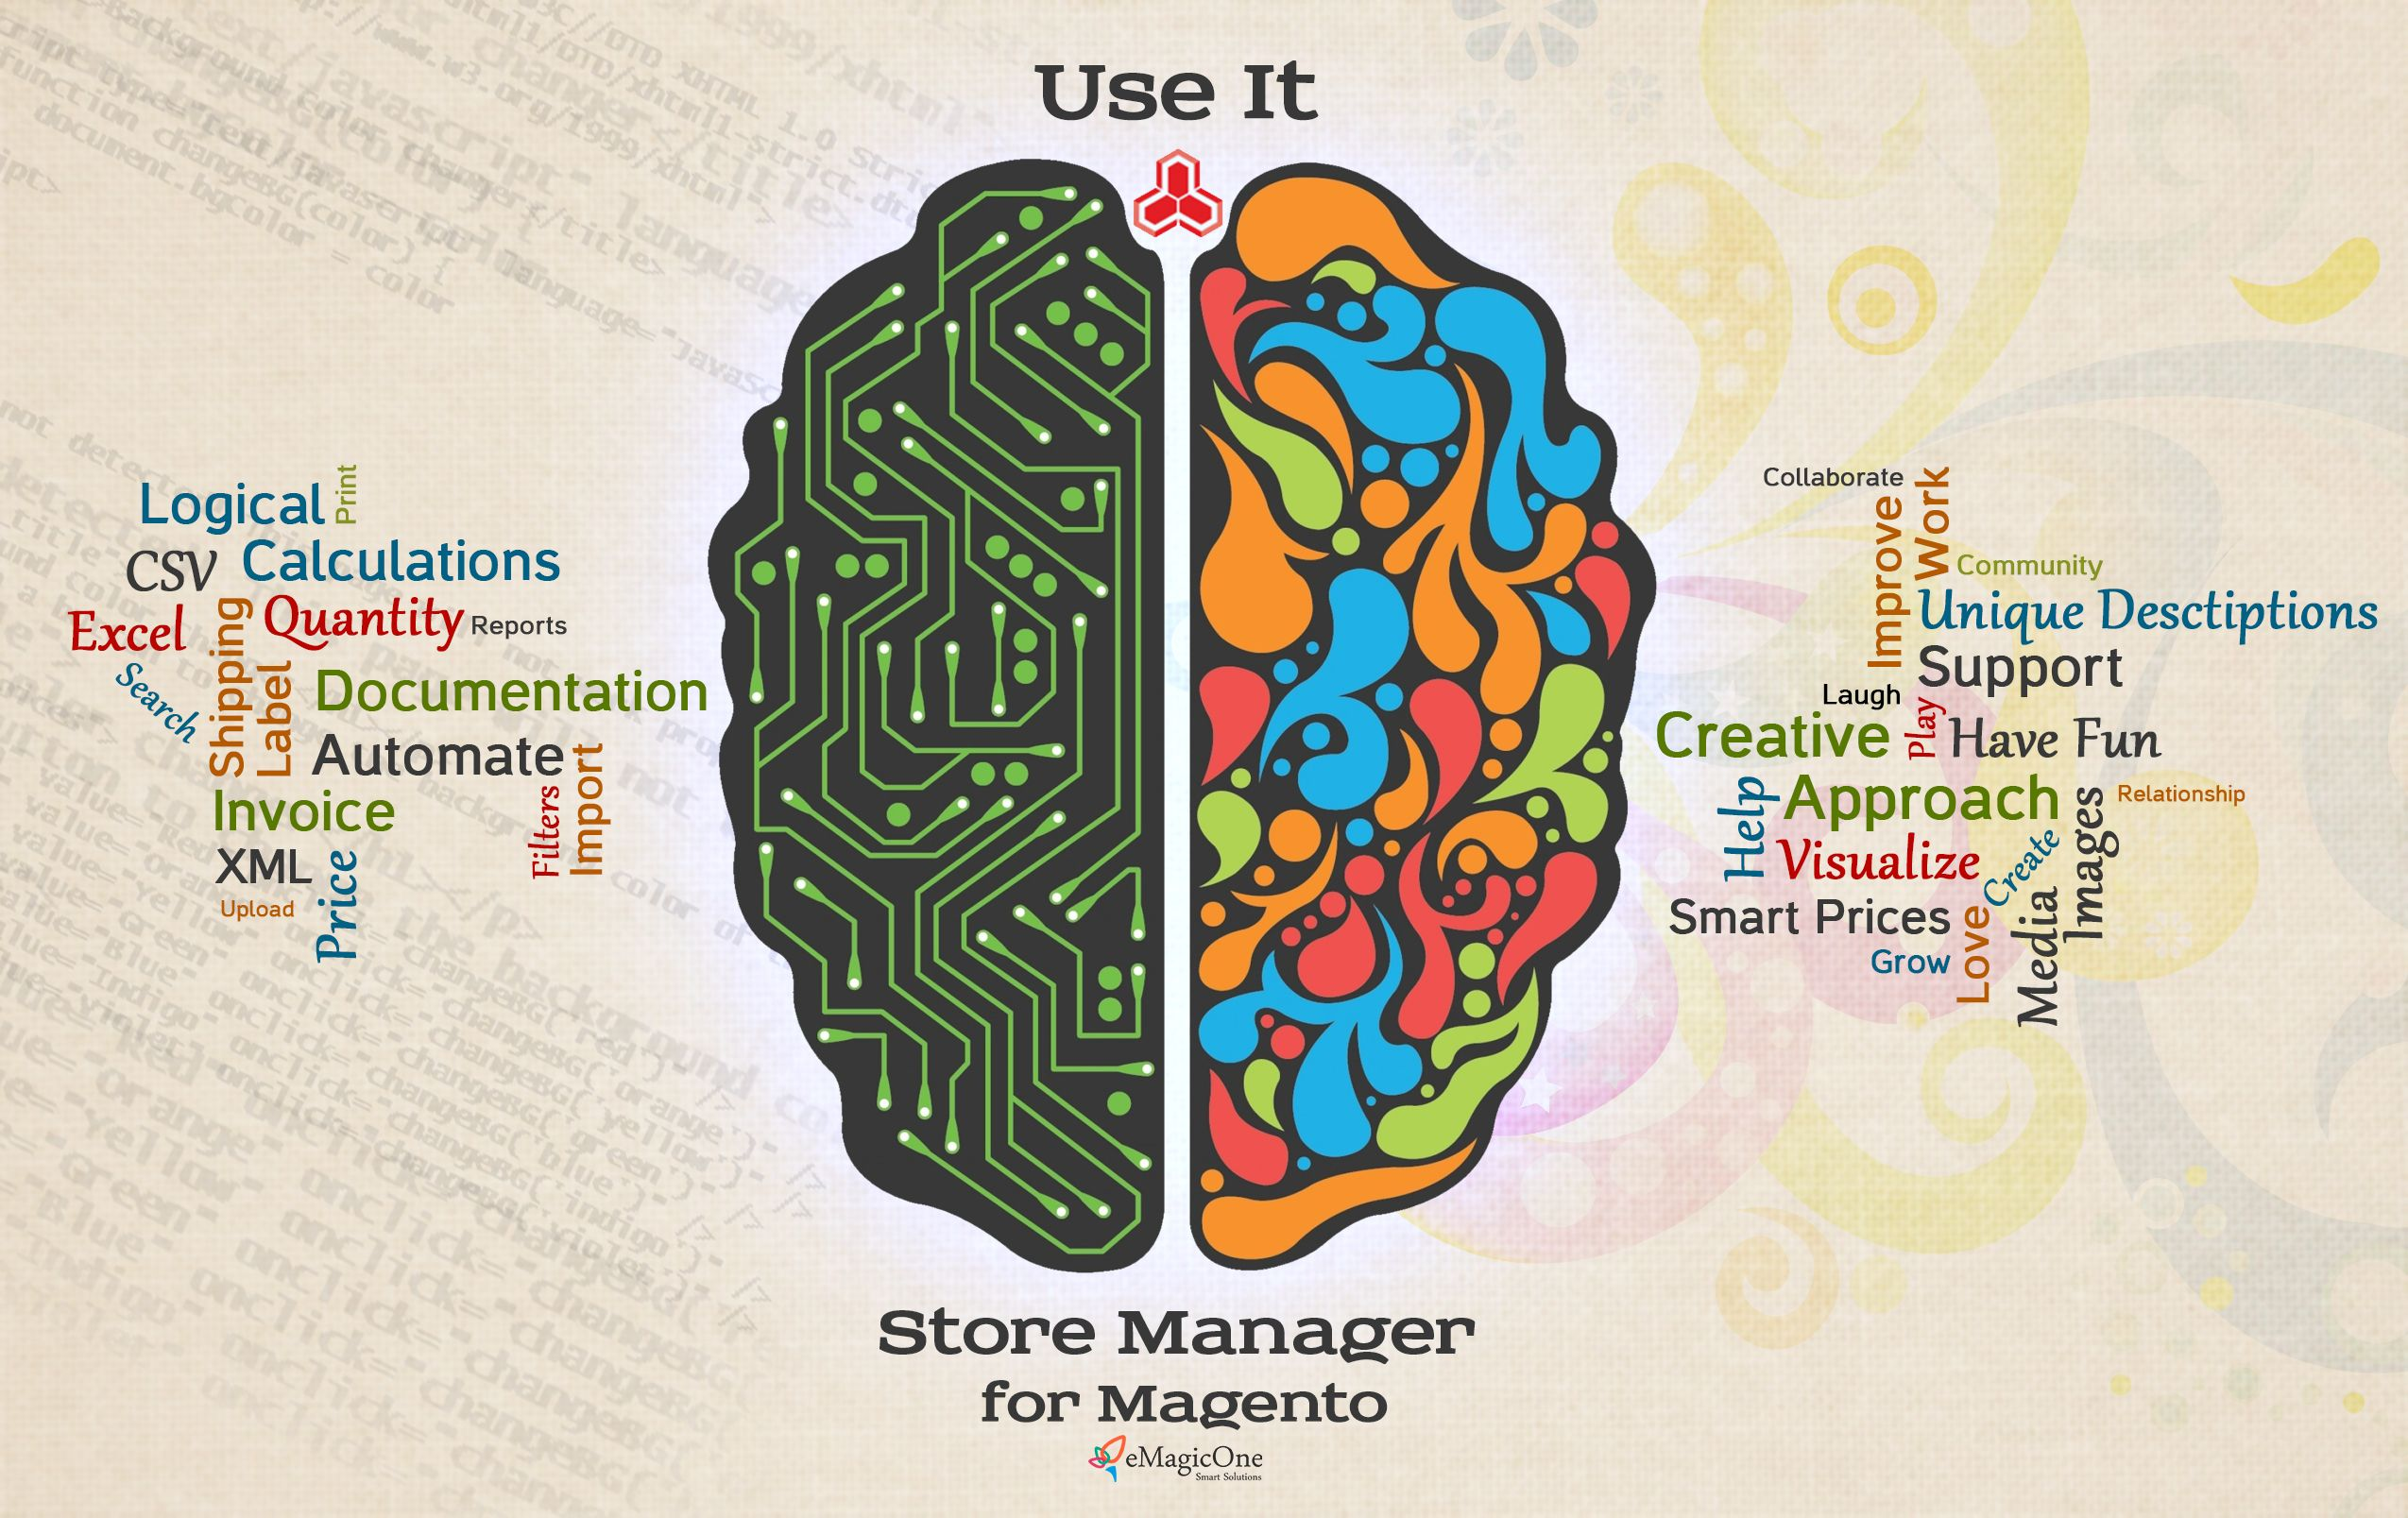 Magento dual brain theory claims that every webshop owner who puts ...